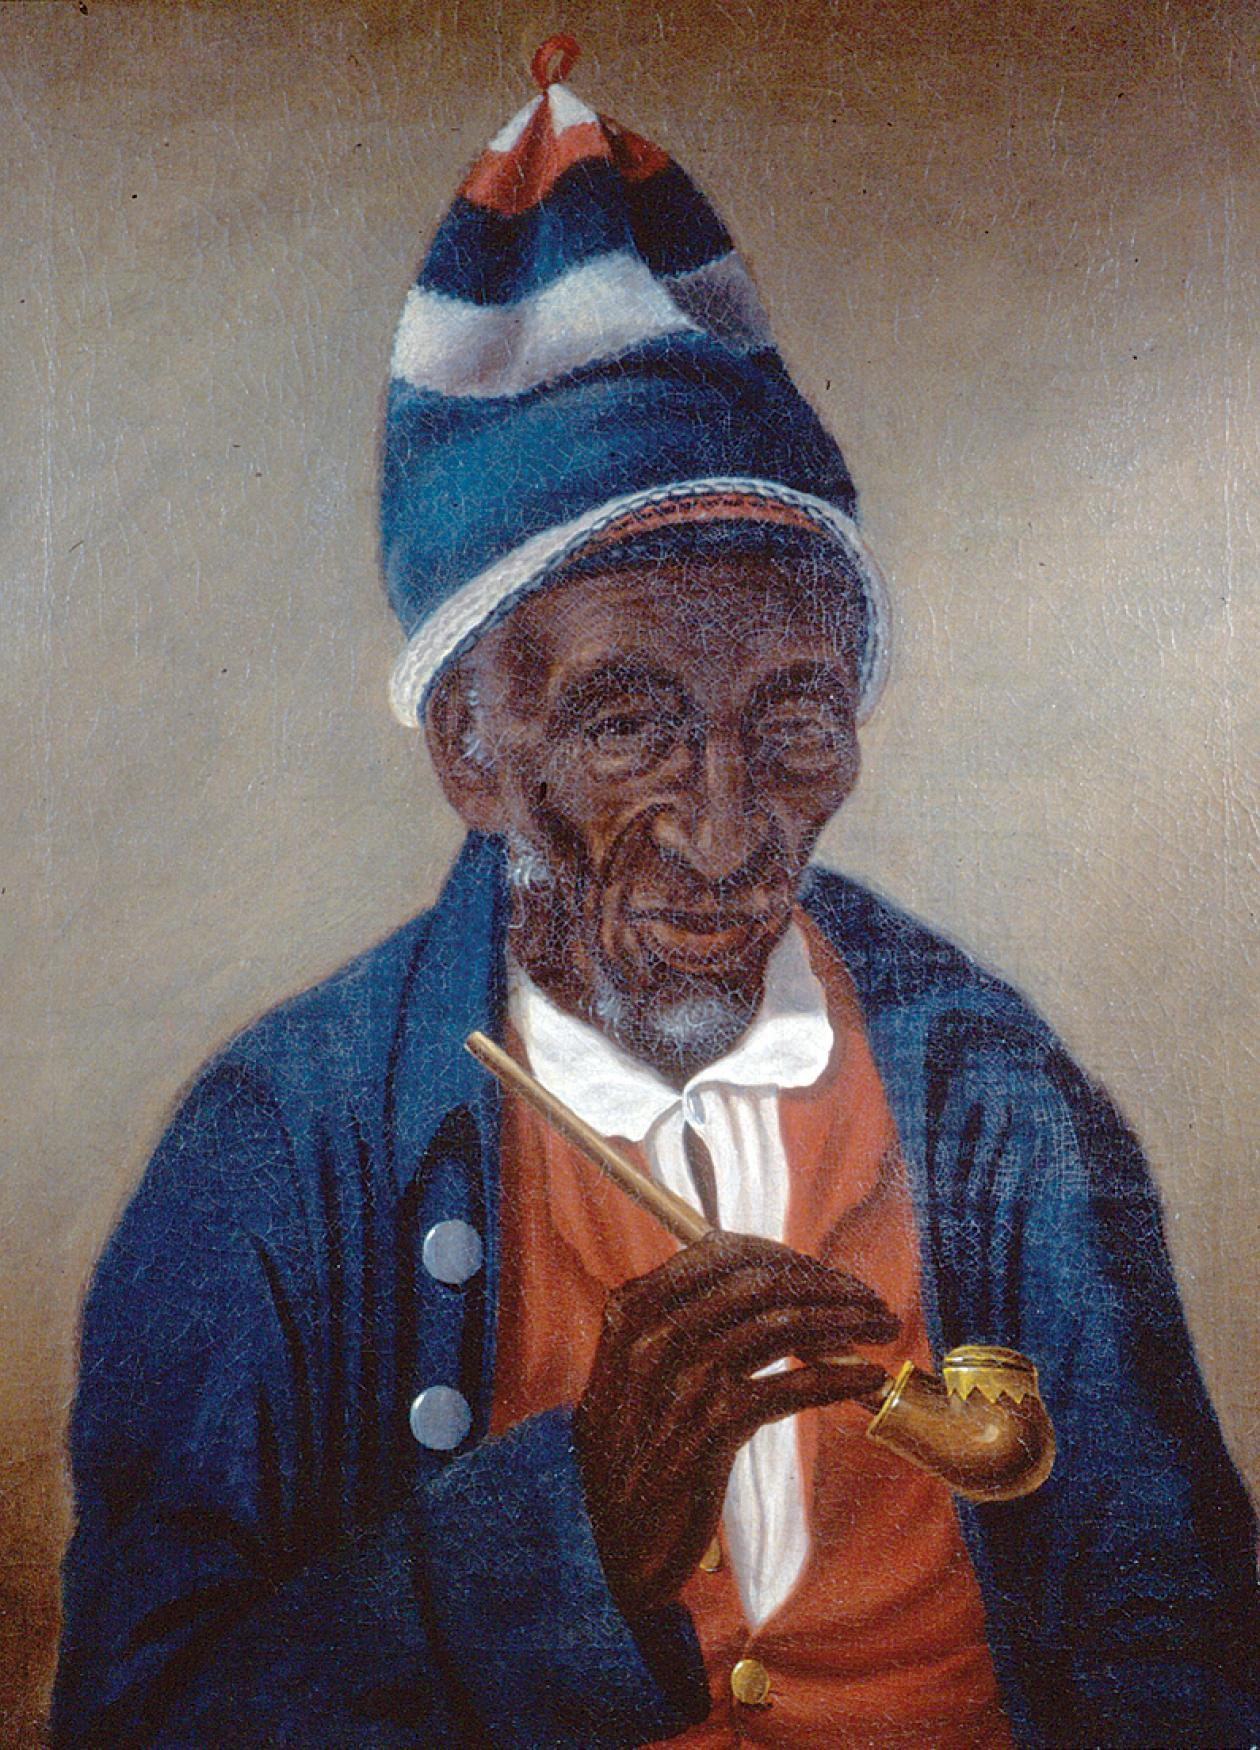 Oil painting of an African American man in a blue coat and hat with pipe